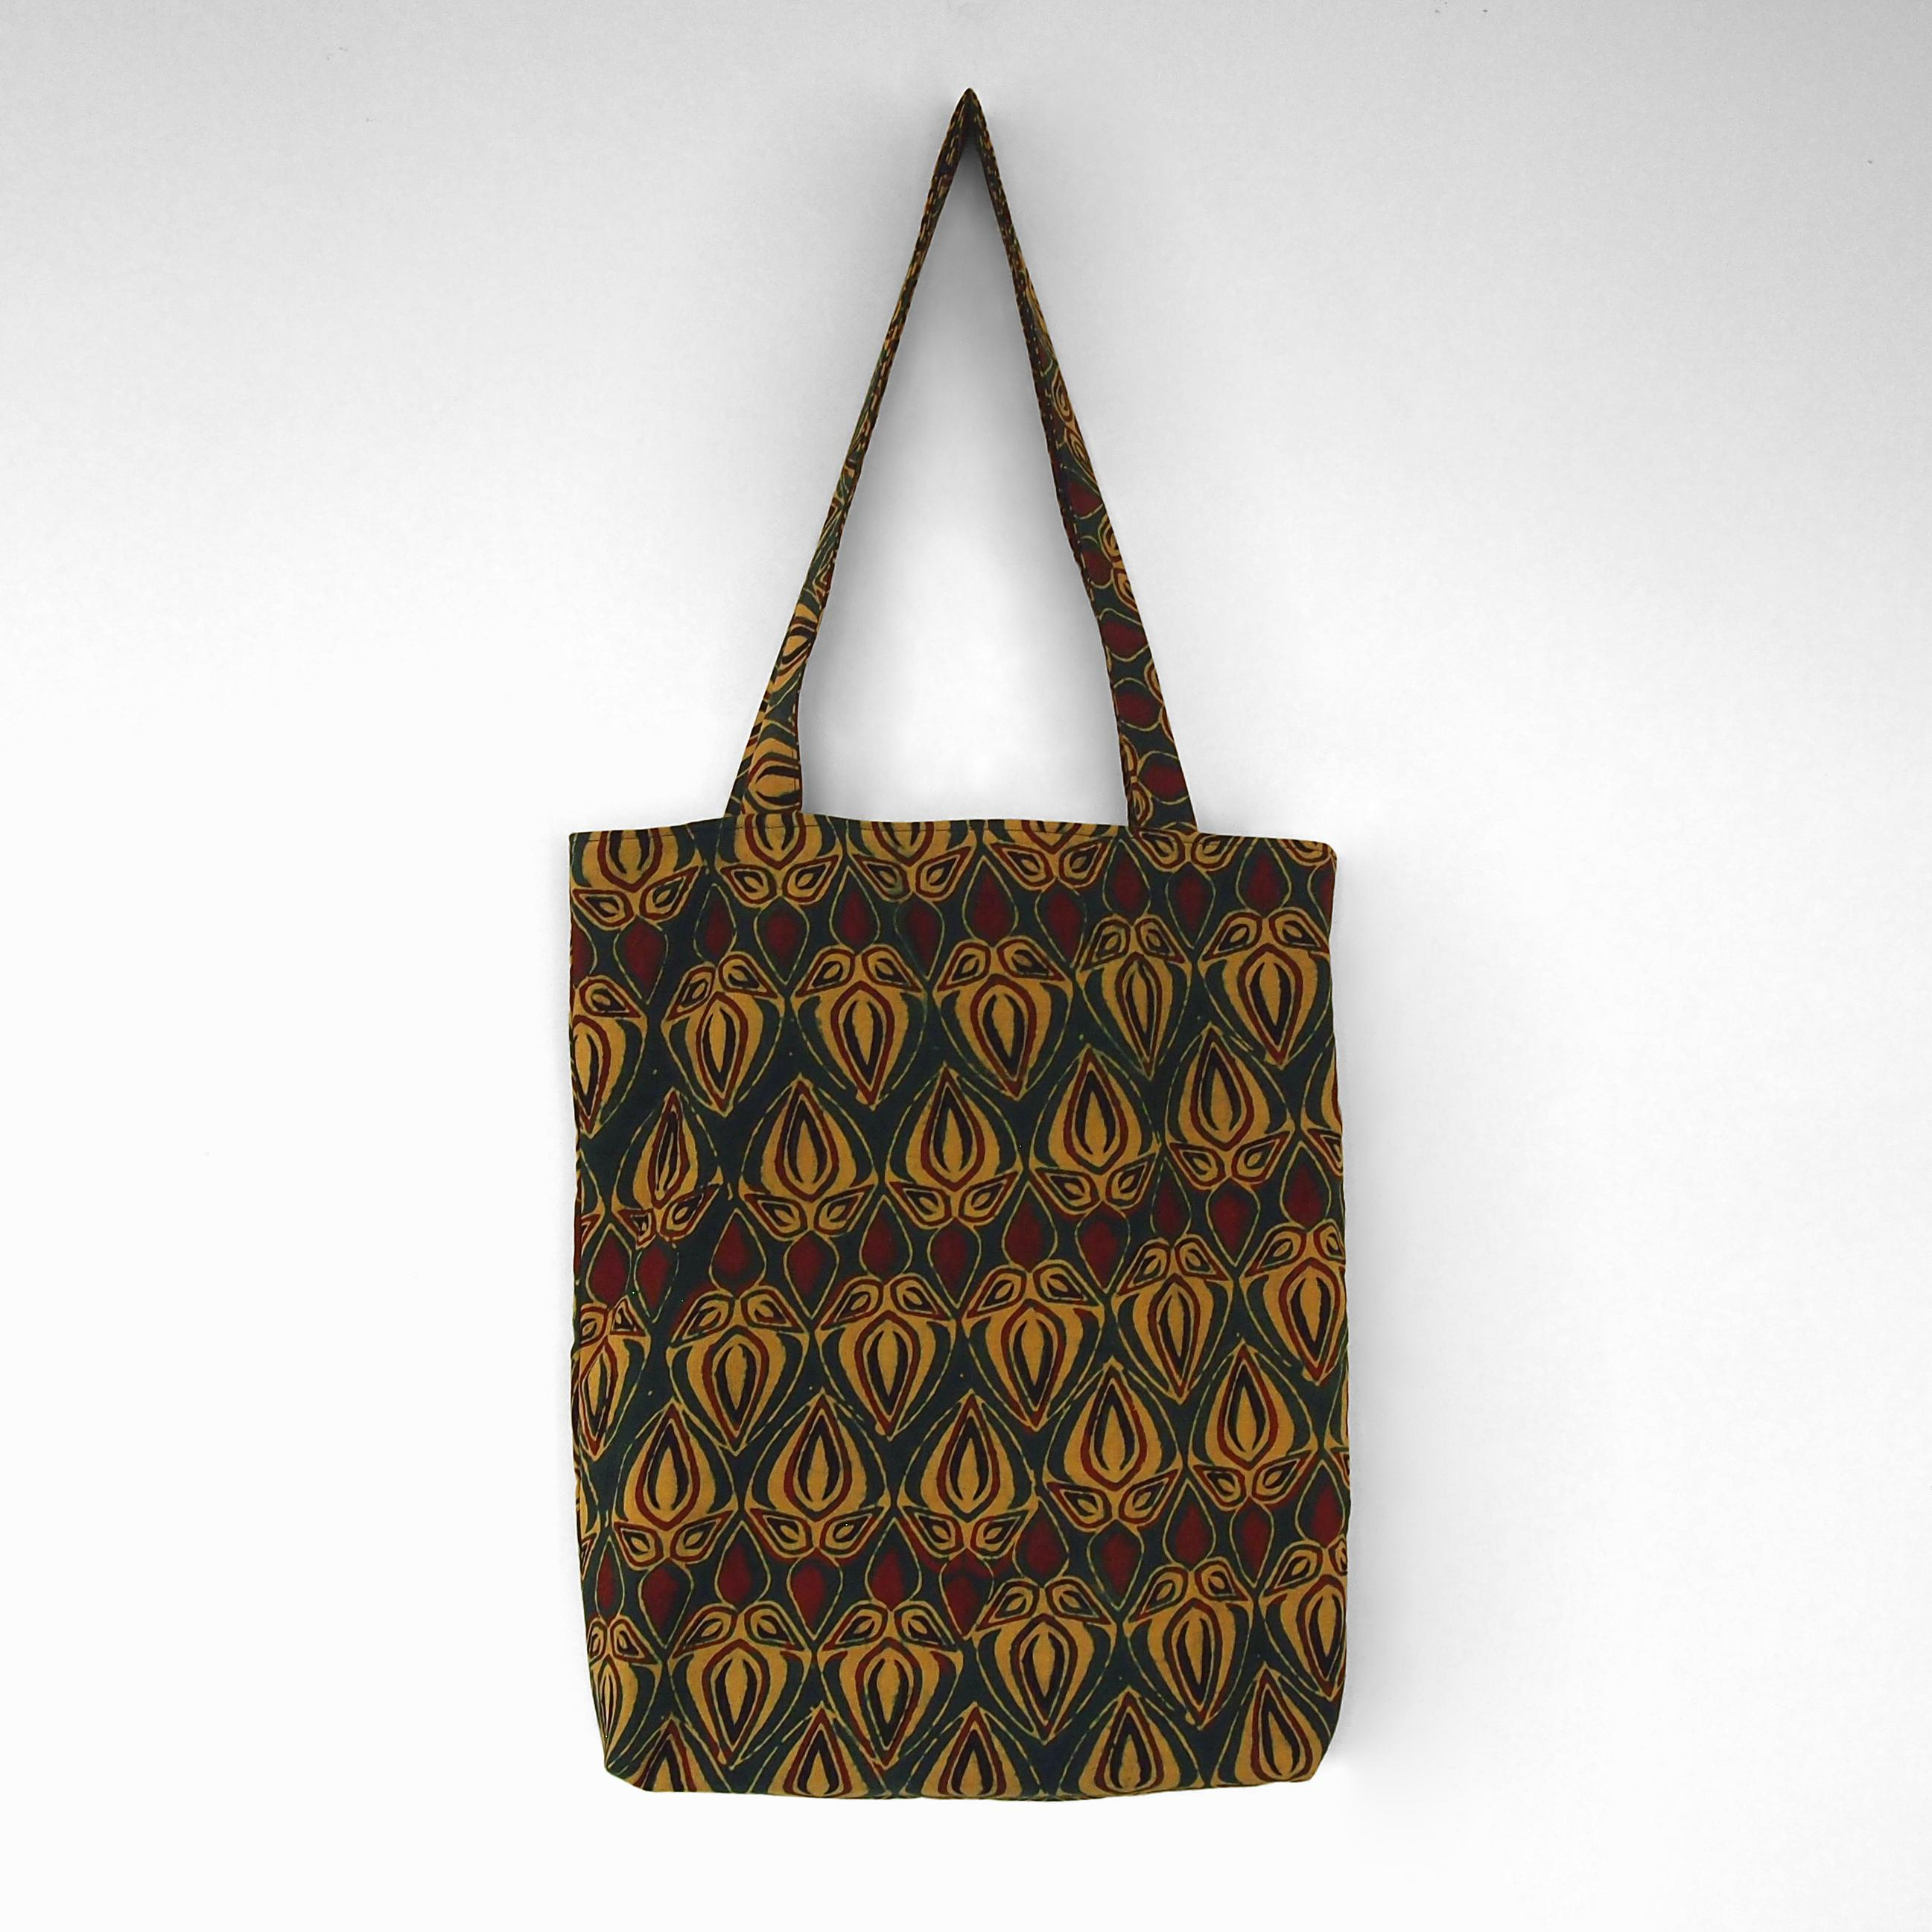 block printed cotton tote bag, green, yellow red bud, natural dye, lined with black cotton, closed